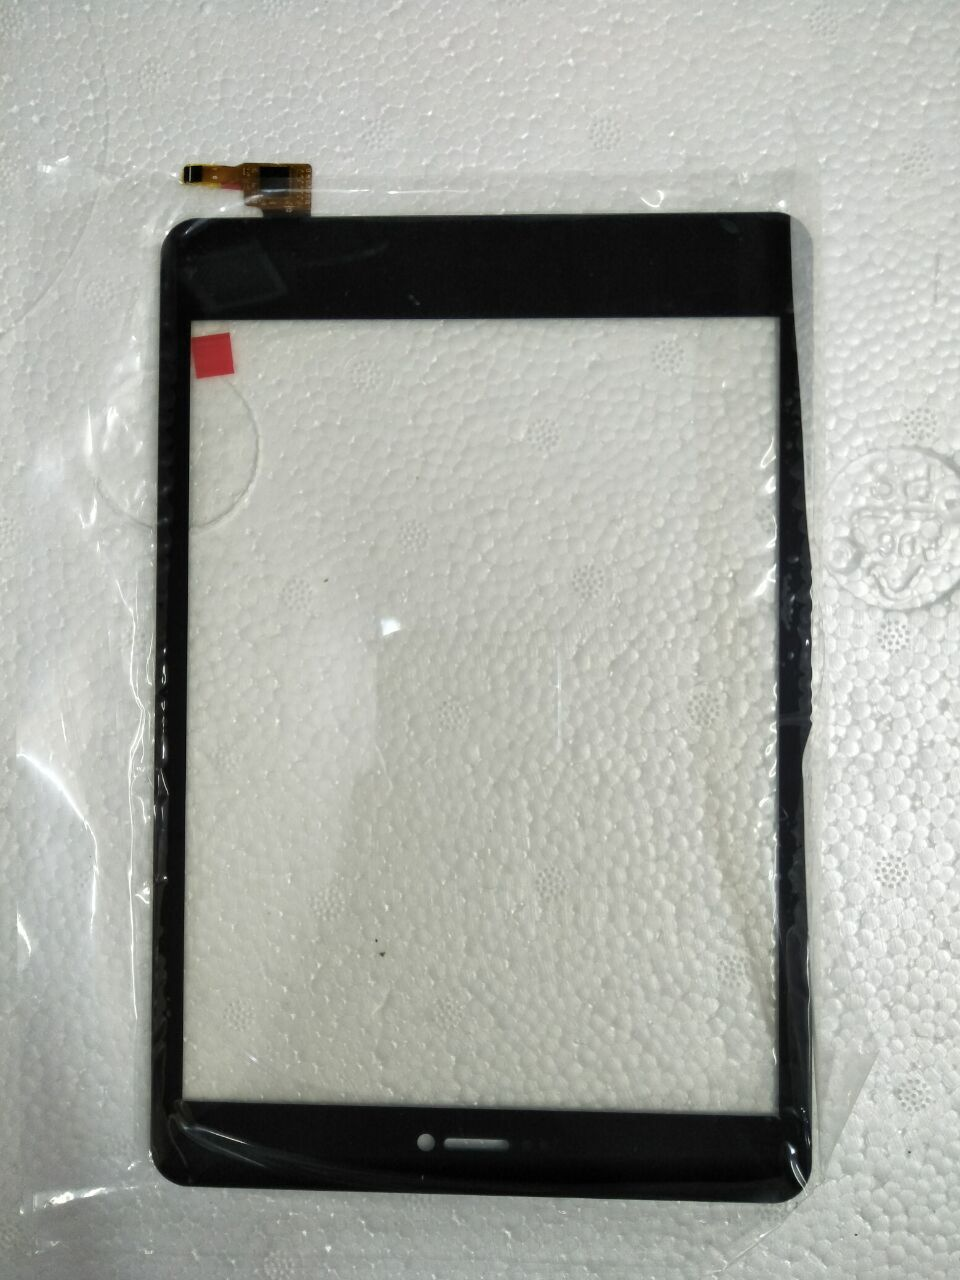 New For 7.85 inch Tablet 078135-01a-v1 Touch Screen Touch Panel digitizer Glass Sensor Replacement Free Shipping touch screen replacement module for nds lite